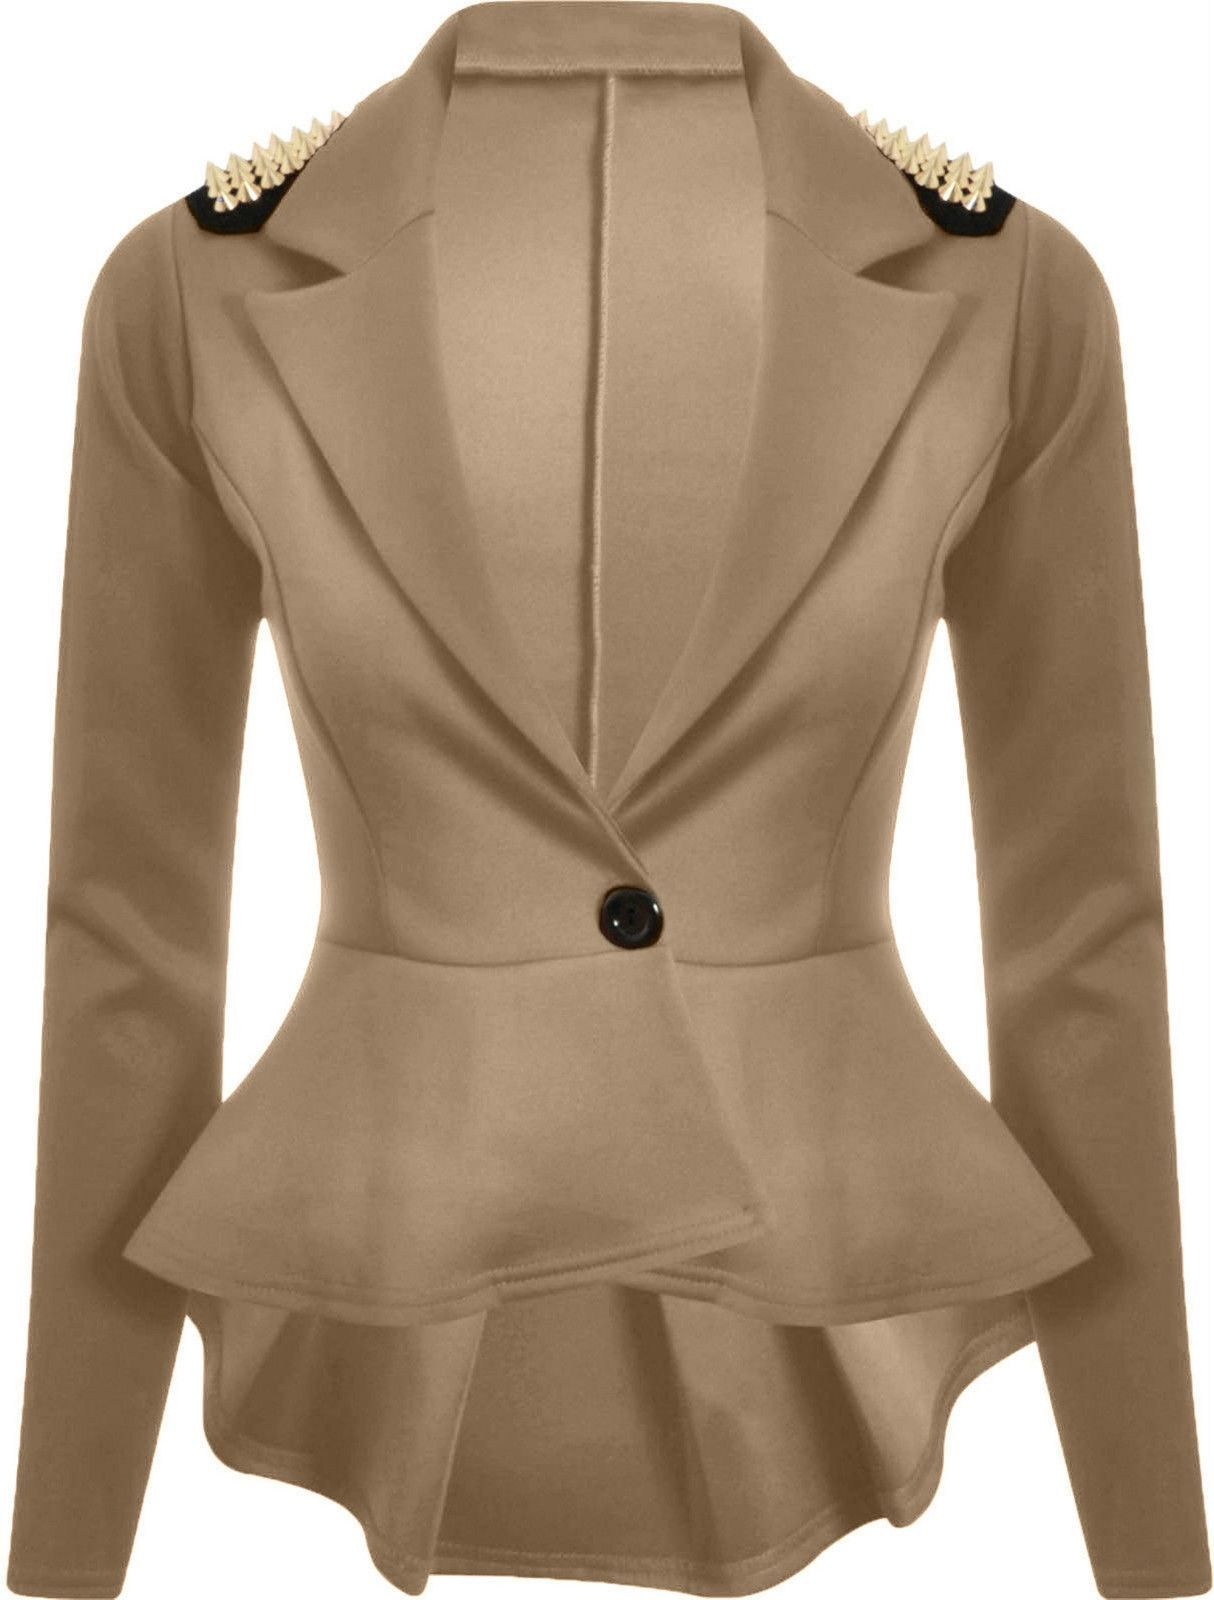 Images of Blazer Jackets For Womens - Reikian